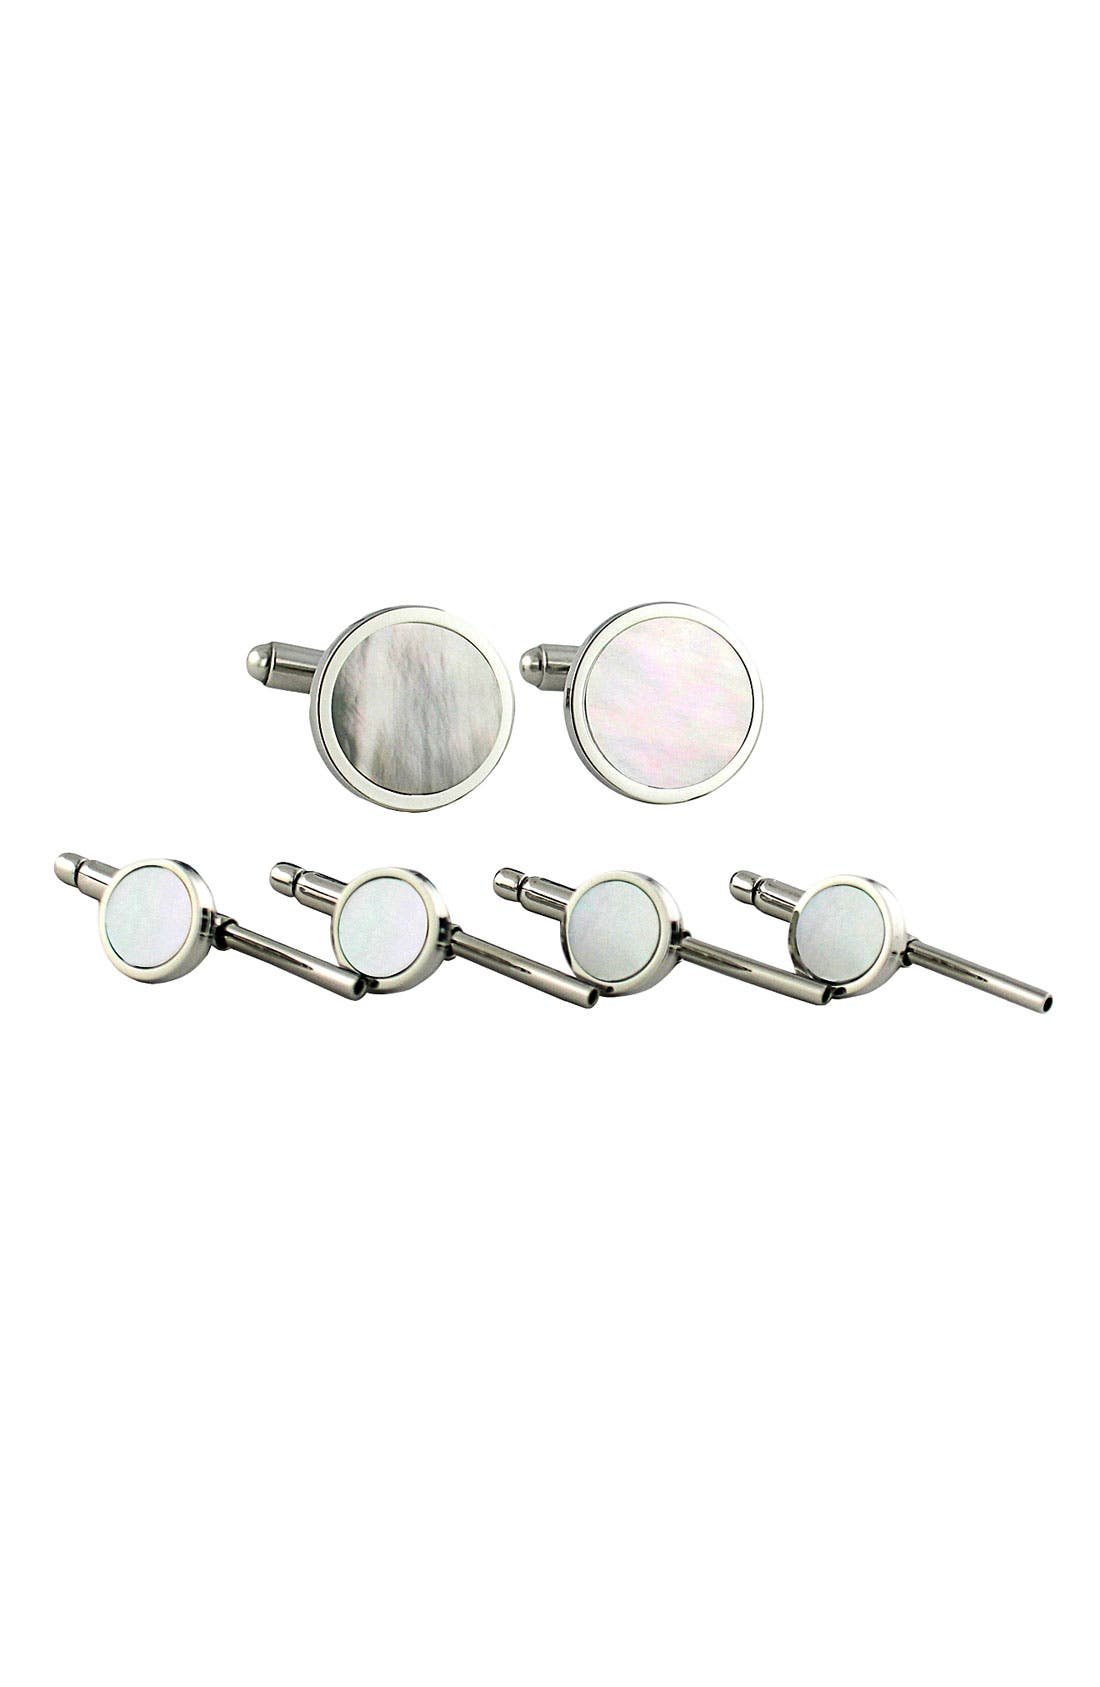 Mother-of-Pearl Cuff Link & Stud Set,                             Main thumbnail 1, color,                             Silver M.O.P Stud Set